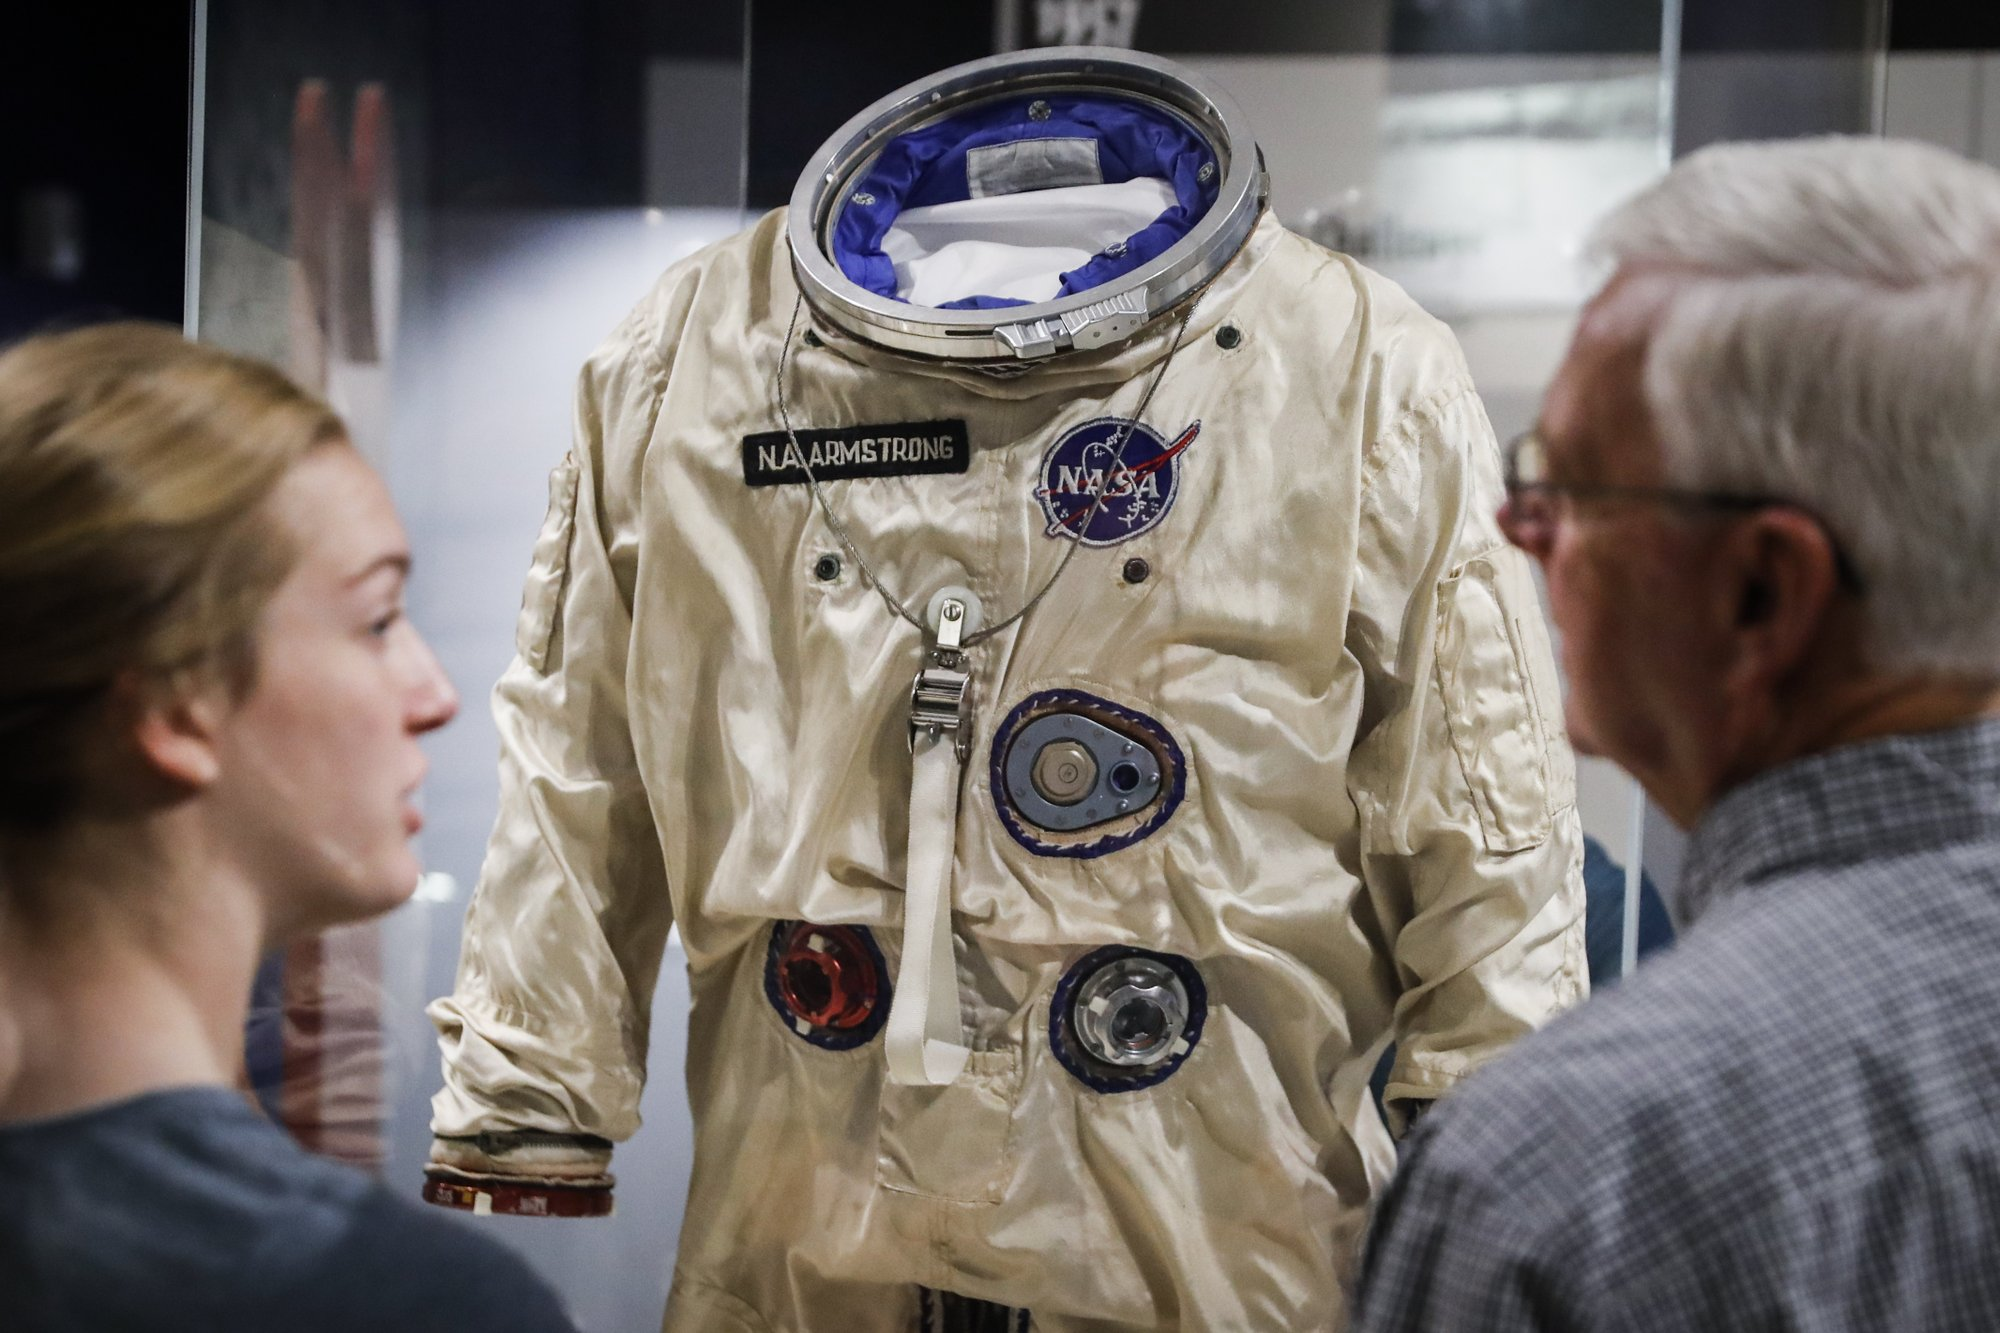 Hometown of first on moon ready to launch 50th celebration